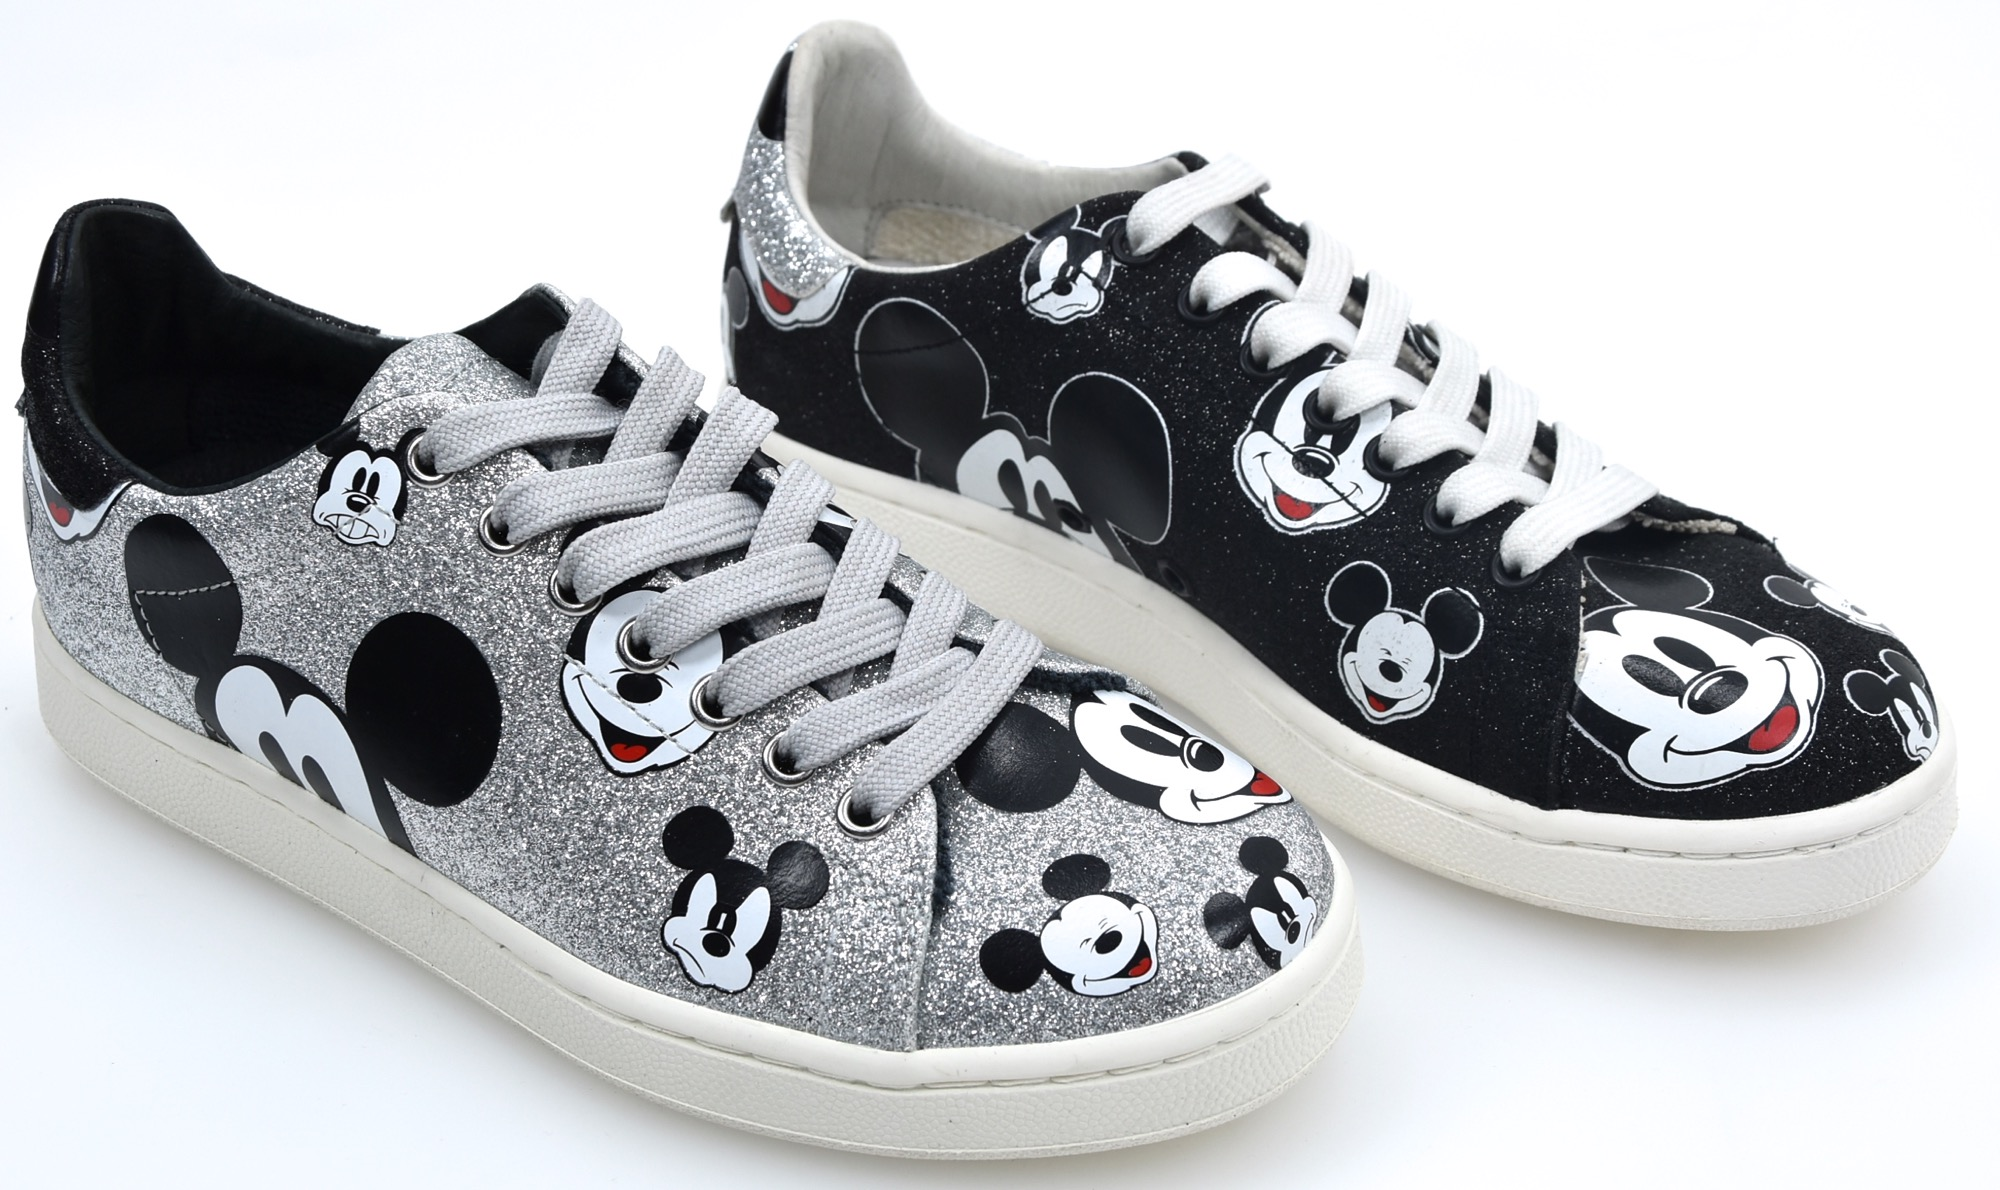 big sale b71cb 1c474 Details about DISNEY MOA MASTER OF ARTS WOMAN SNEAKER SHOES CASUAL CODE  MD62 M10P - MD85 M08B